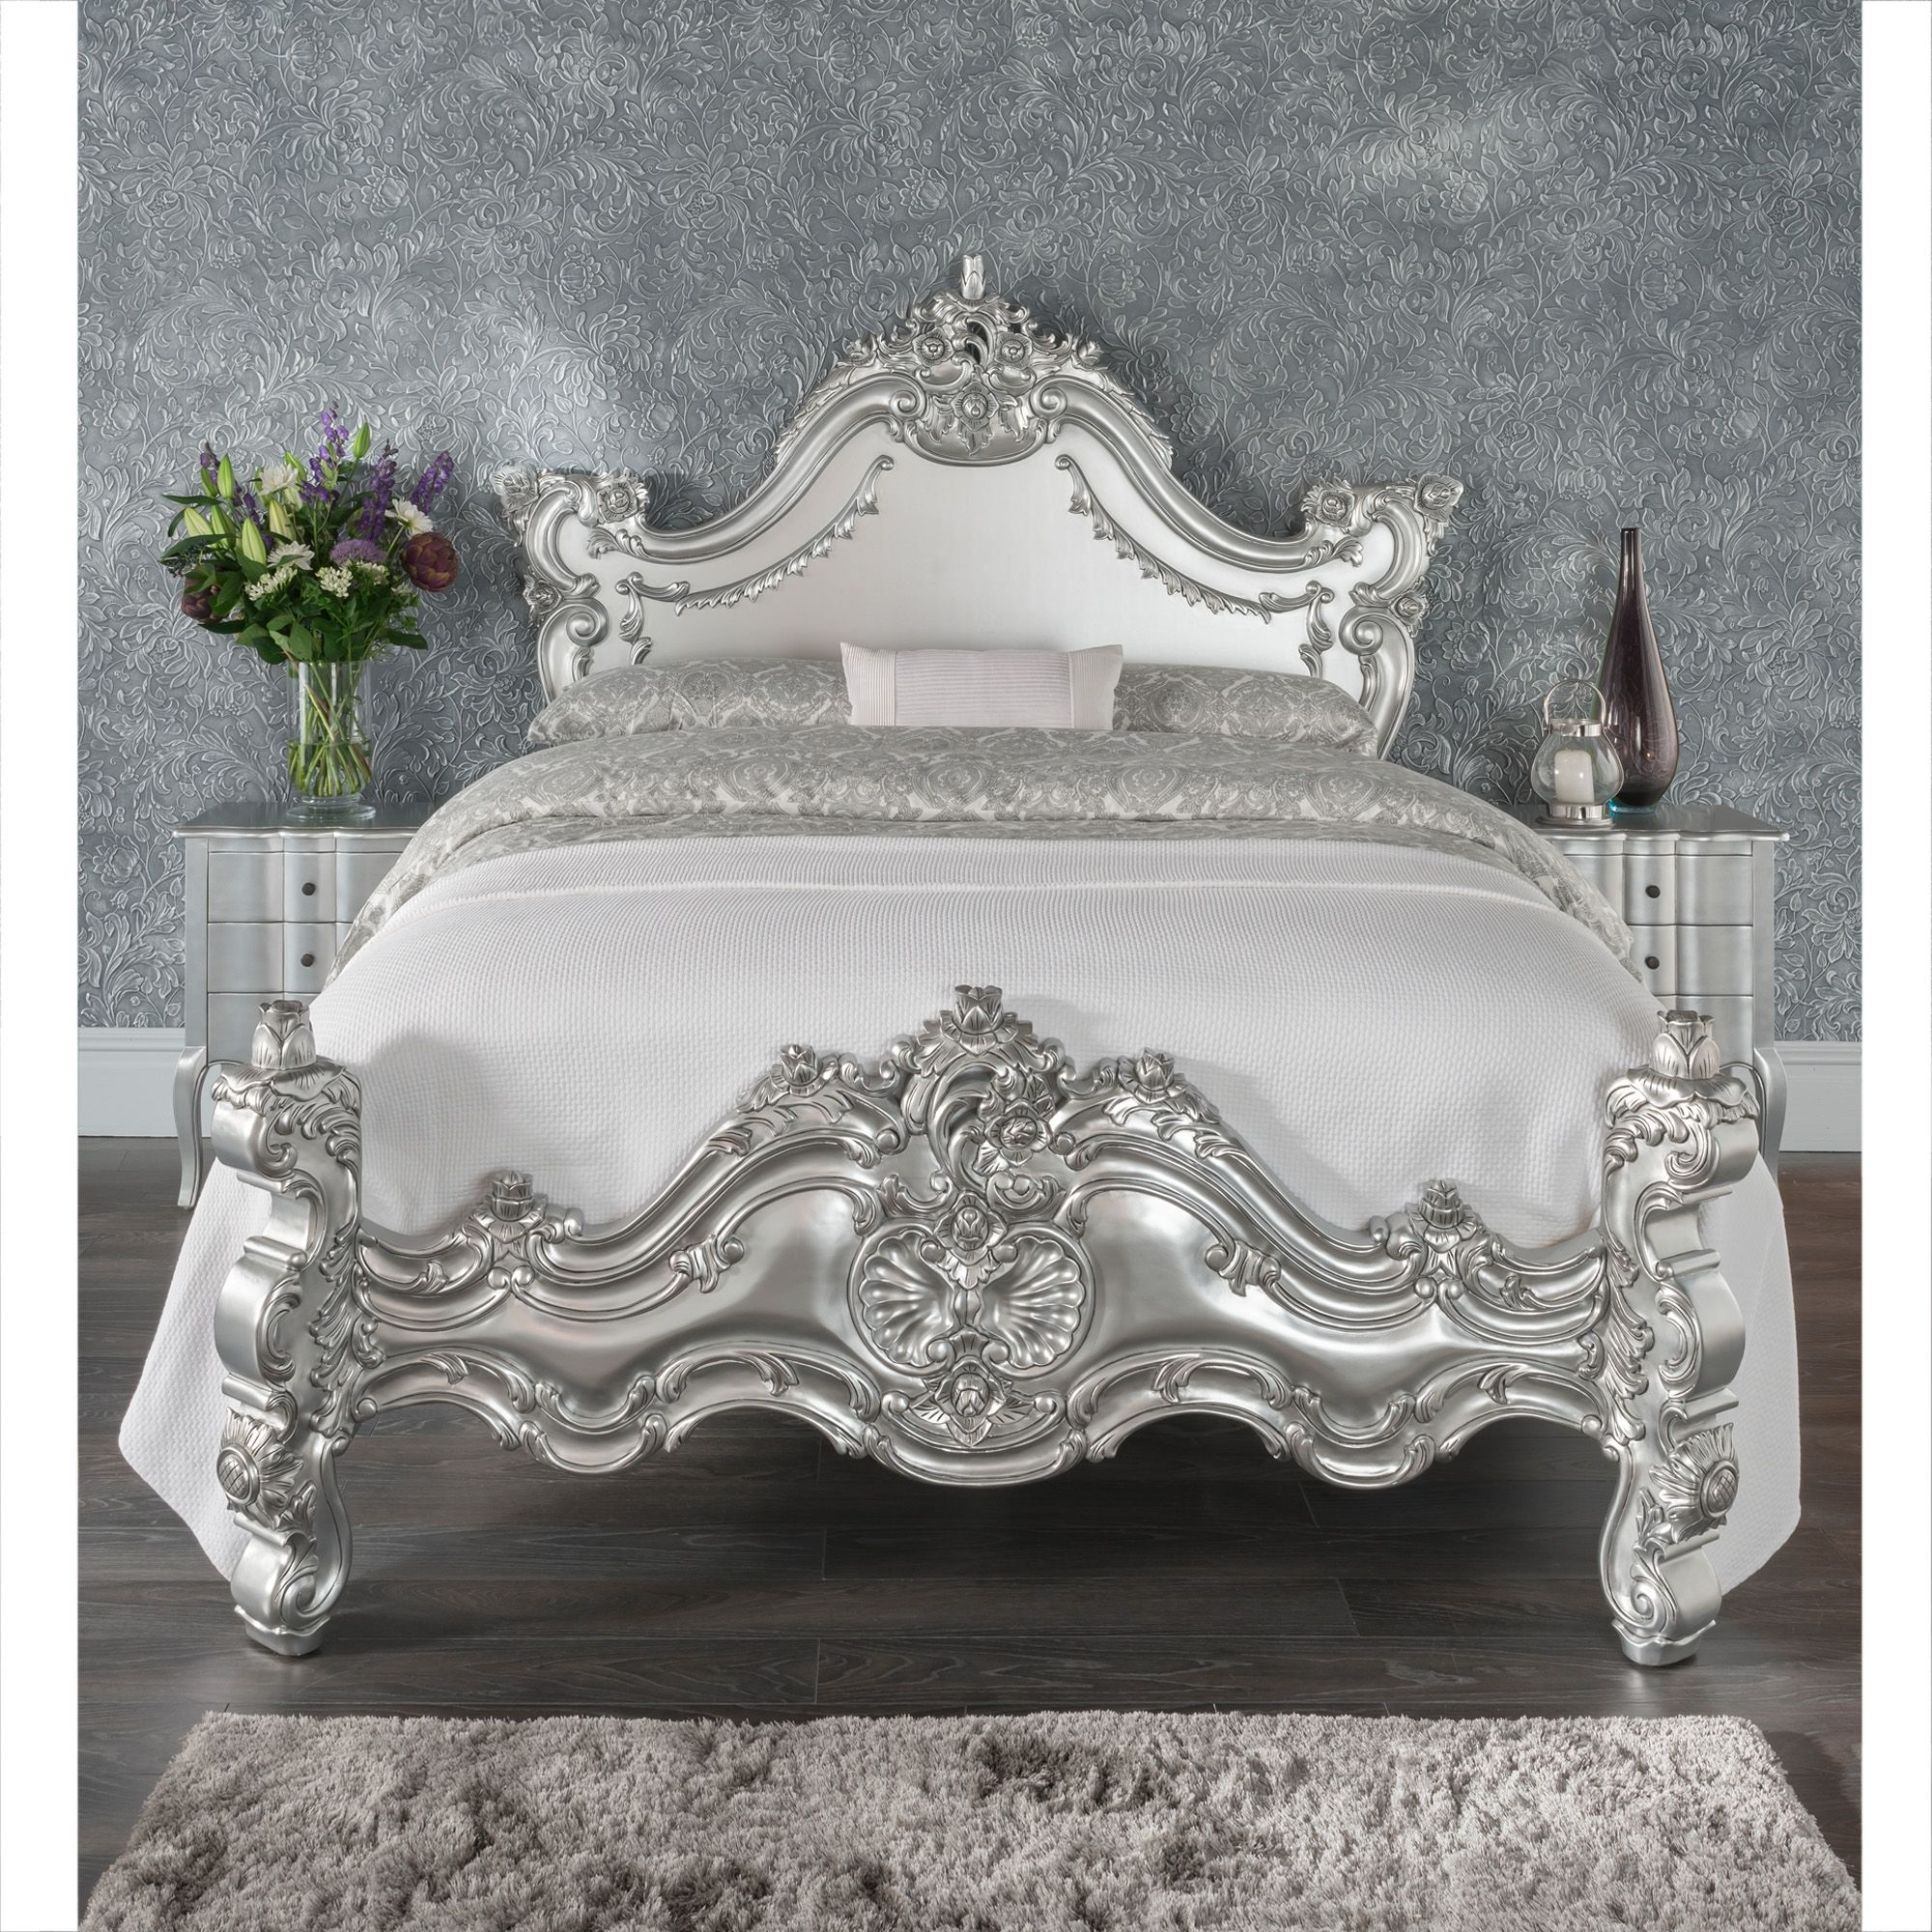 Silver Estelle Antique French Style Bed Shabby Chic Bedroom